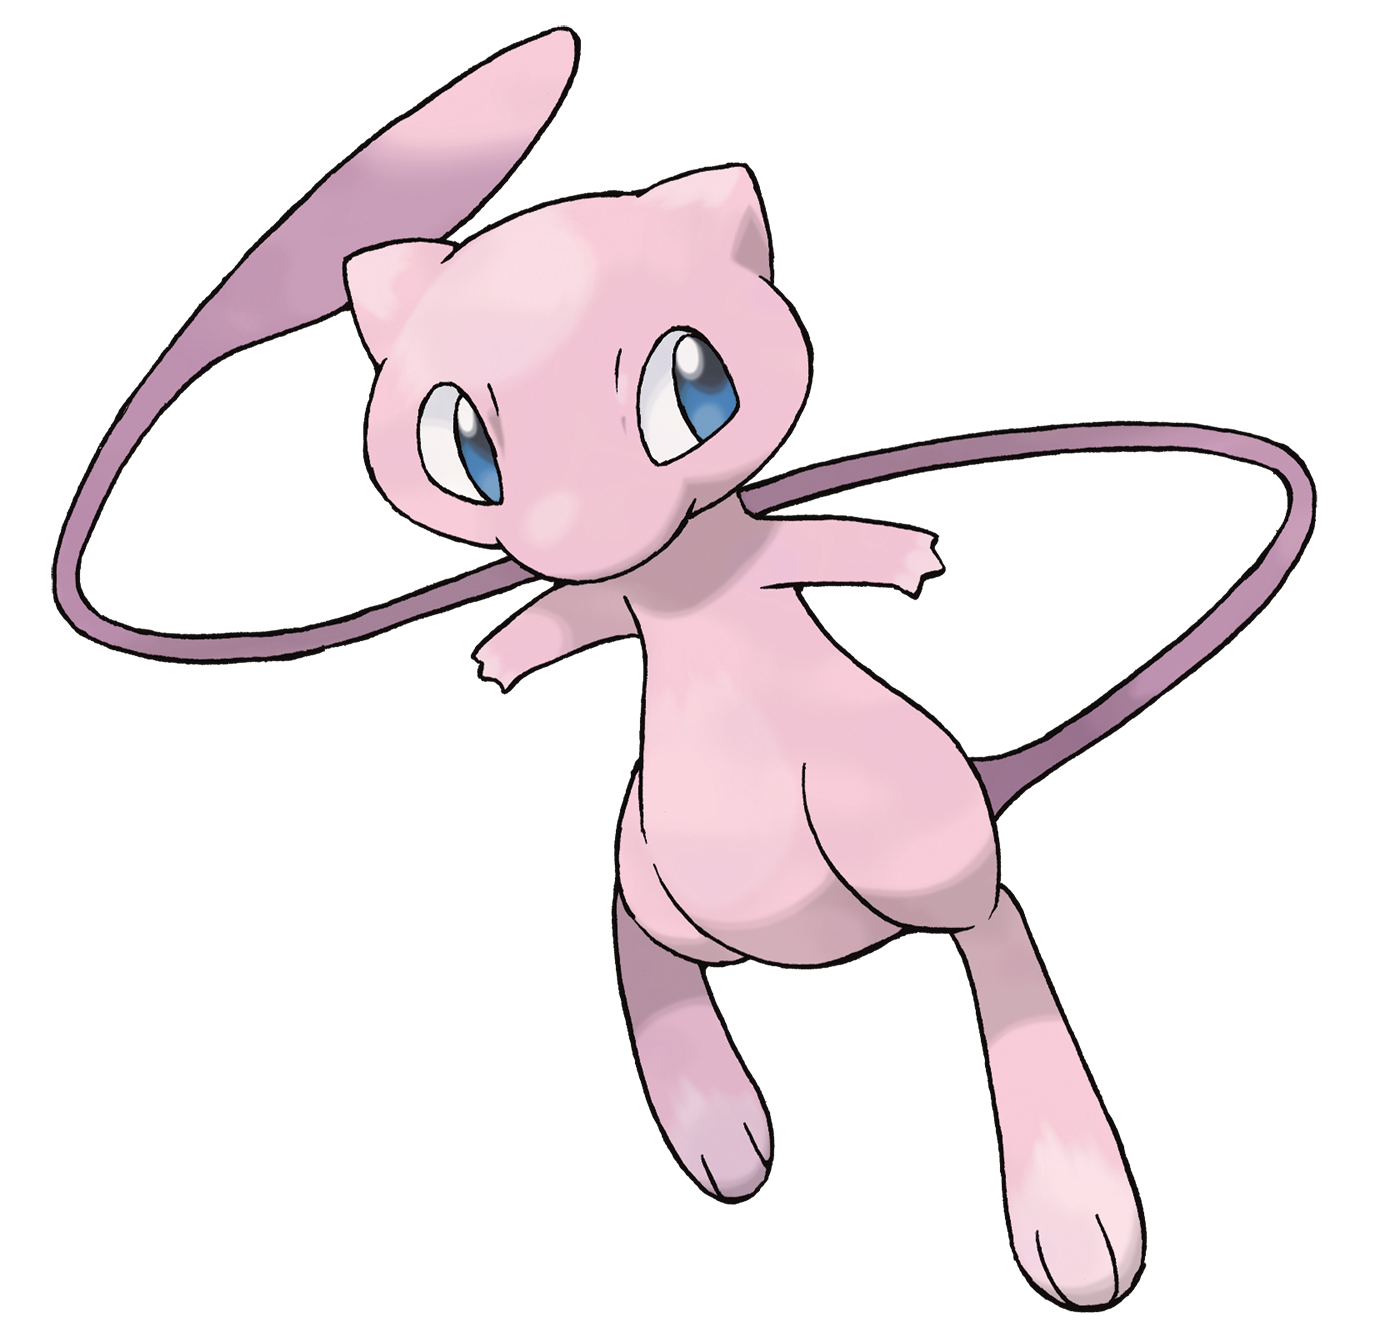 http://images2.wikia.nocookie.net/__cb20101008110630/pokemon/images/b/b1/151Mew.png